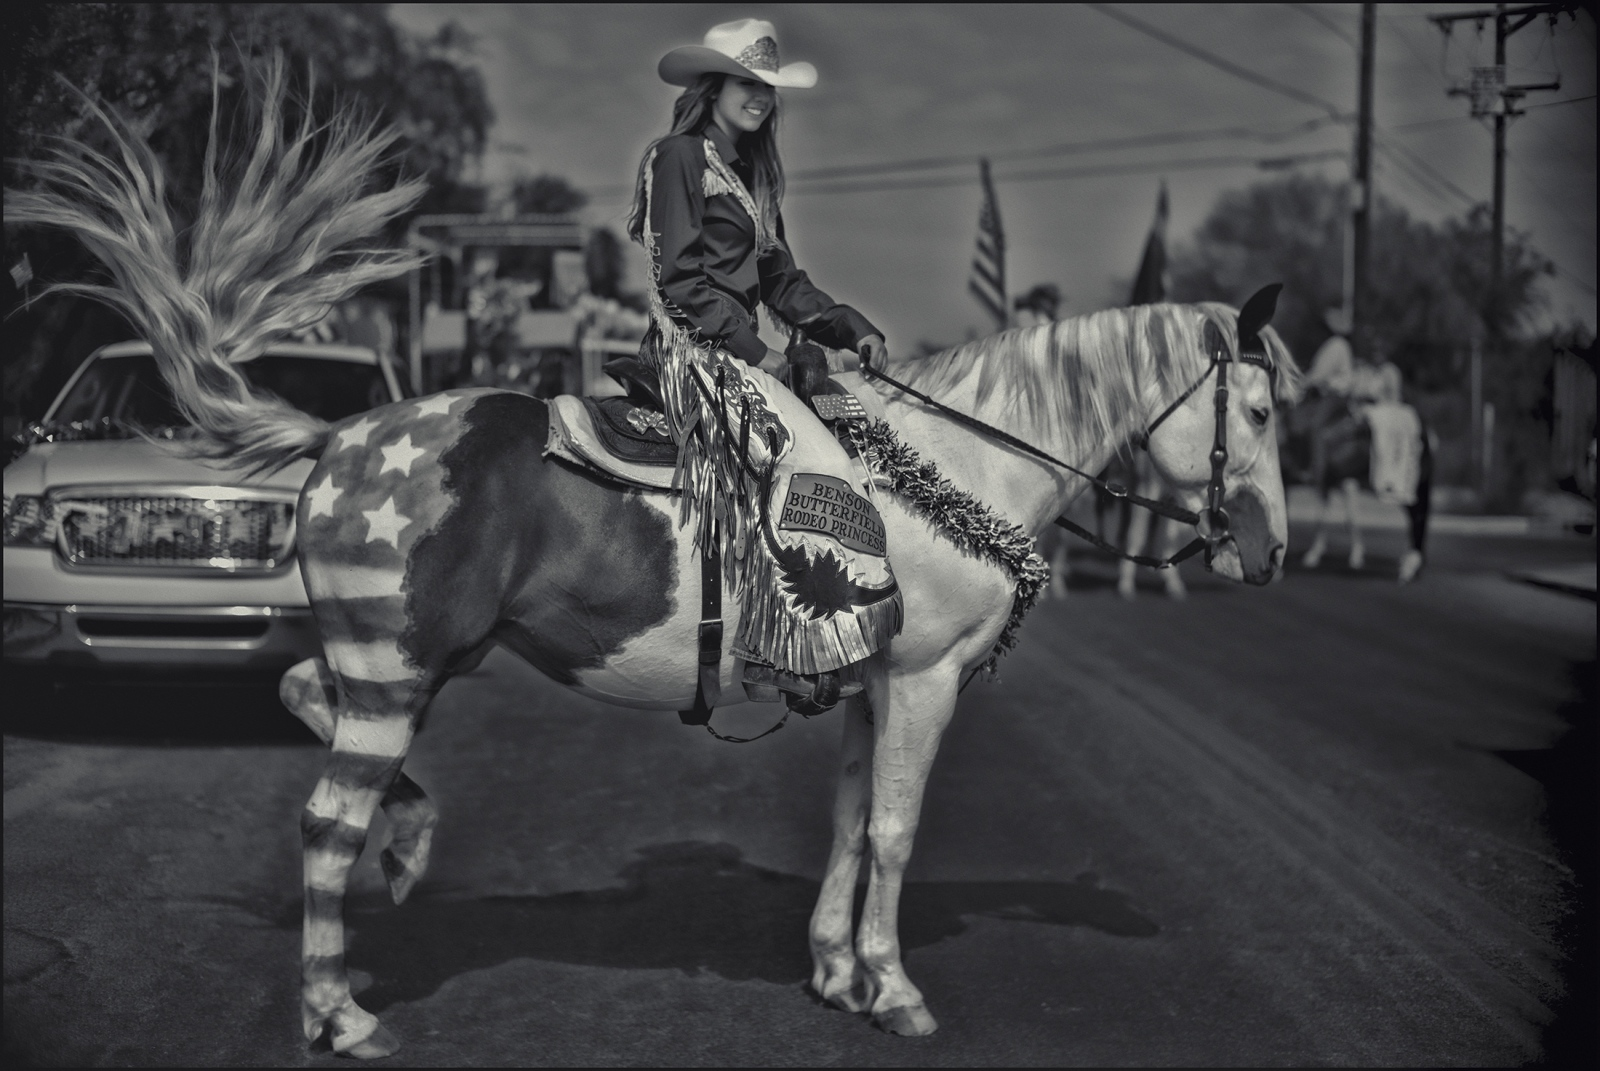 Rodeo princess at July 4th parade, Benson, AZ. 2018.